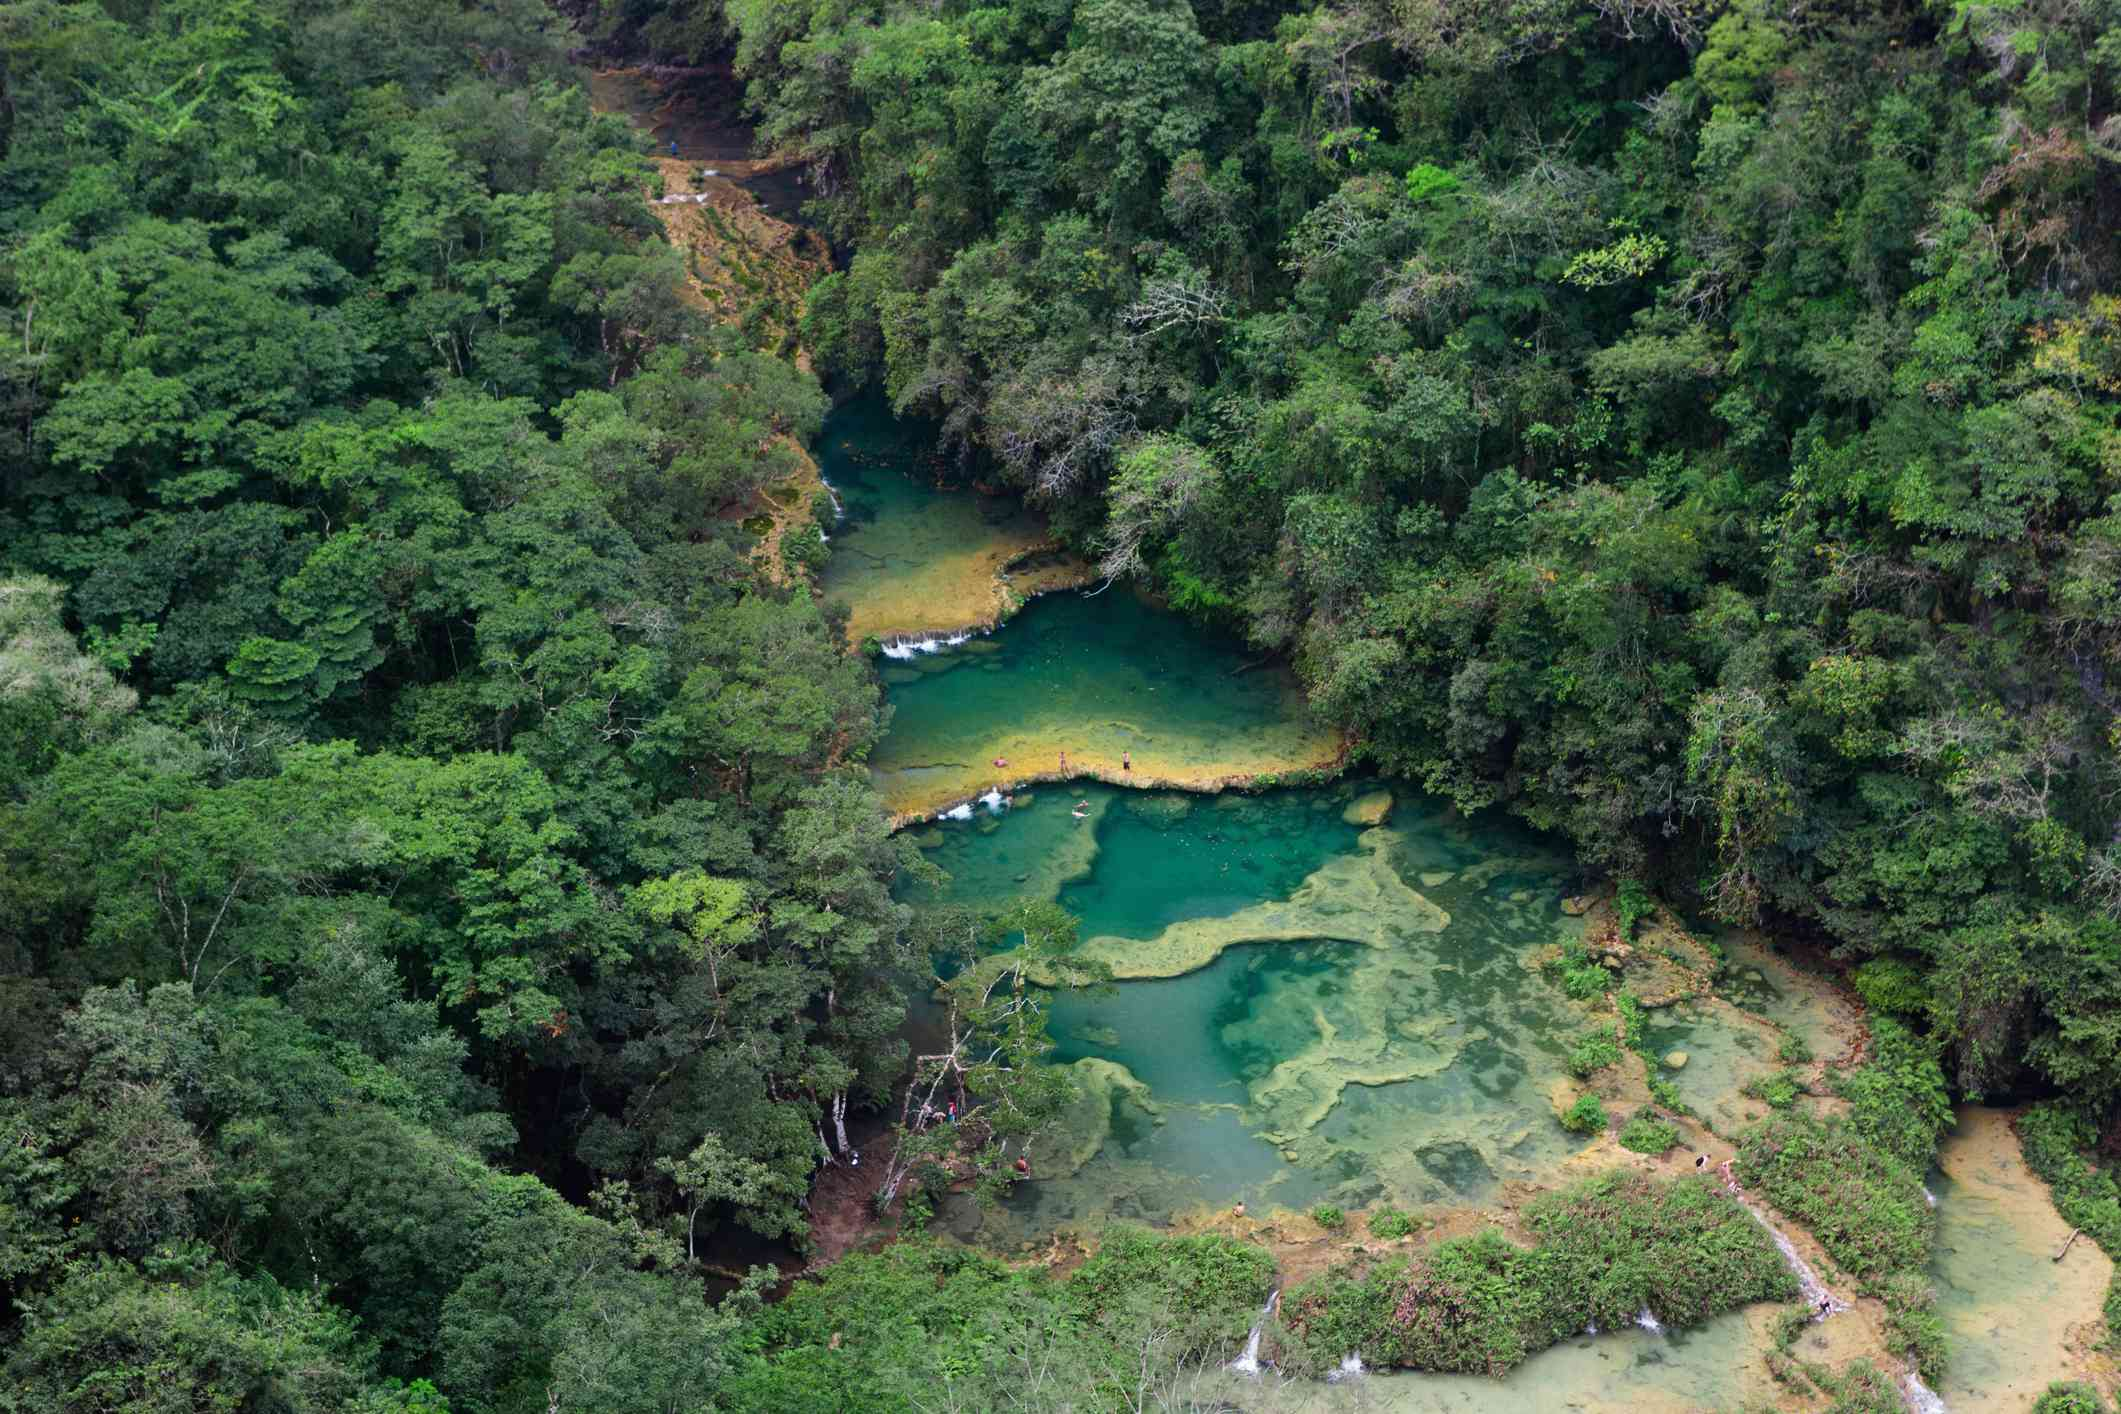 Semuc Champey is famous for it's pools